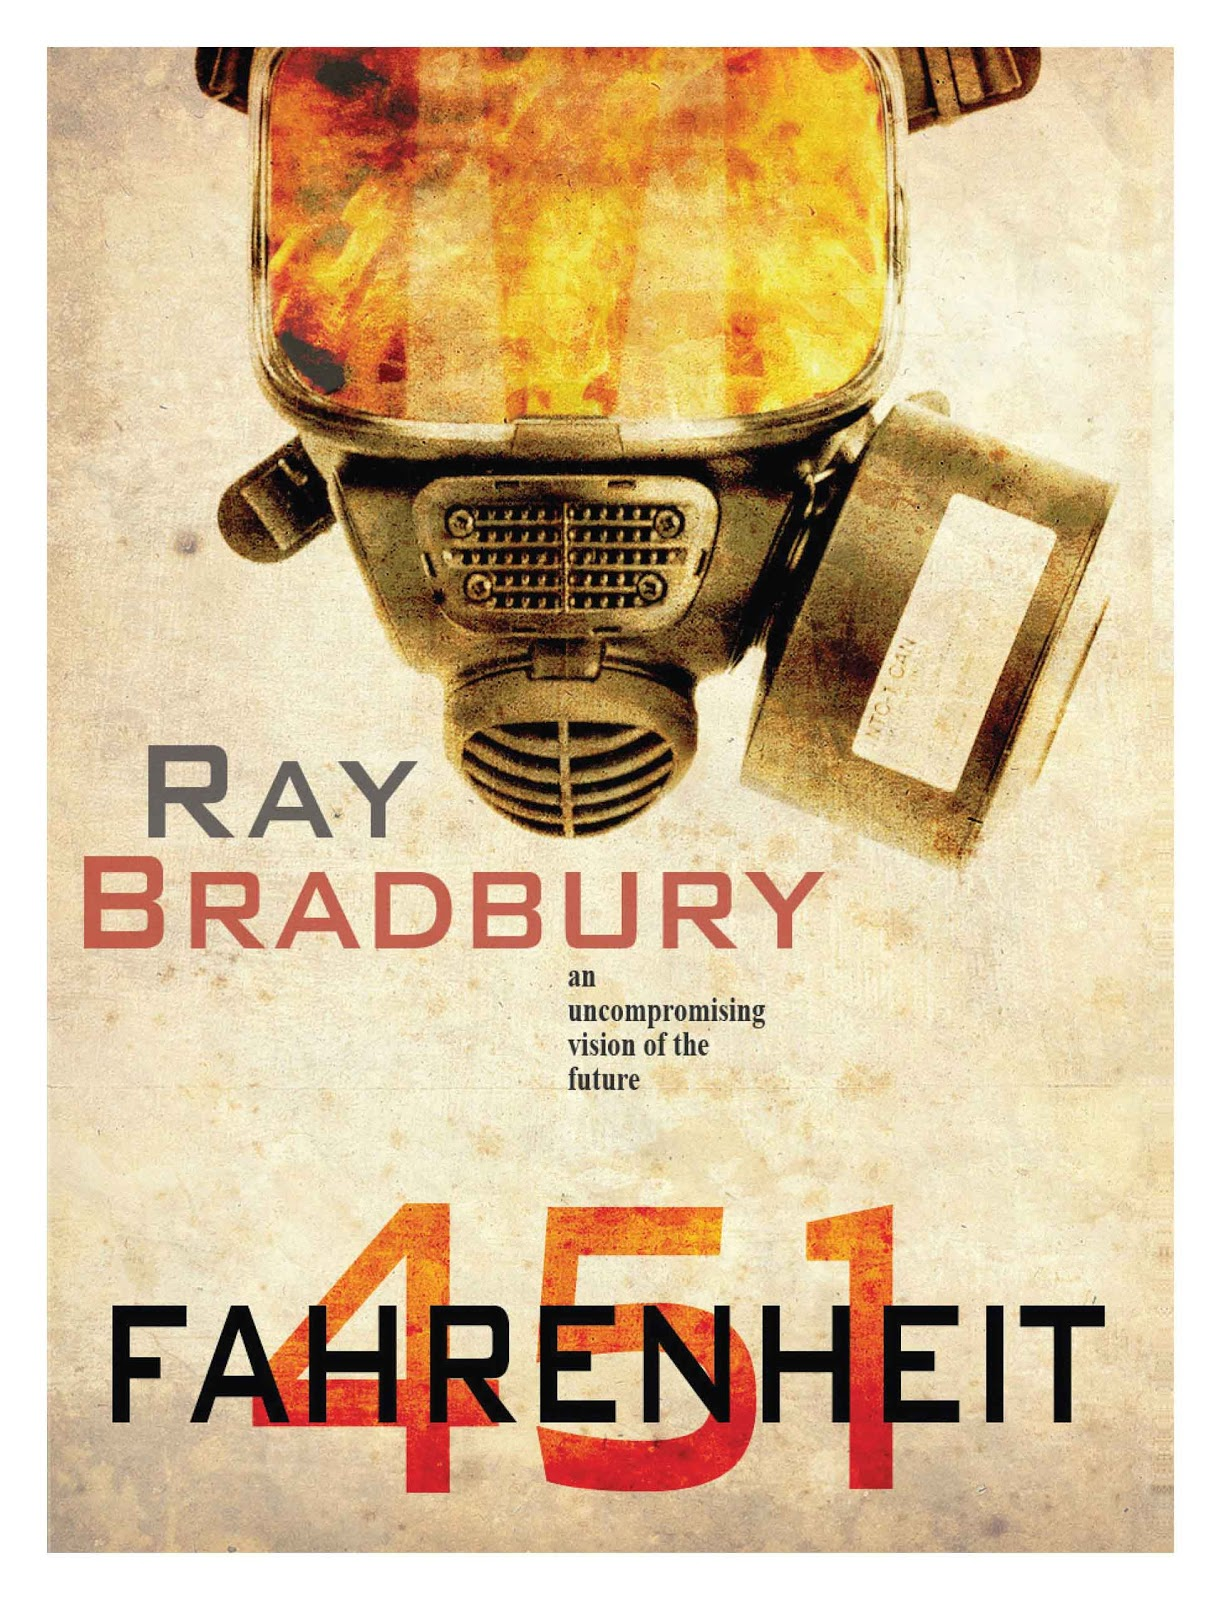 summary analysis of ray bradburys the The martian chronicles by ray bradbury concept analysis for tenth grade based upon the 1979 bantam publication prepared by megan botts-hamzawi.